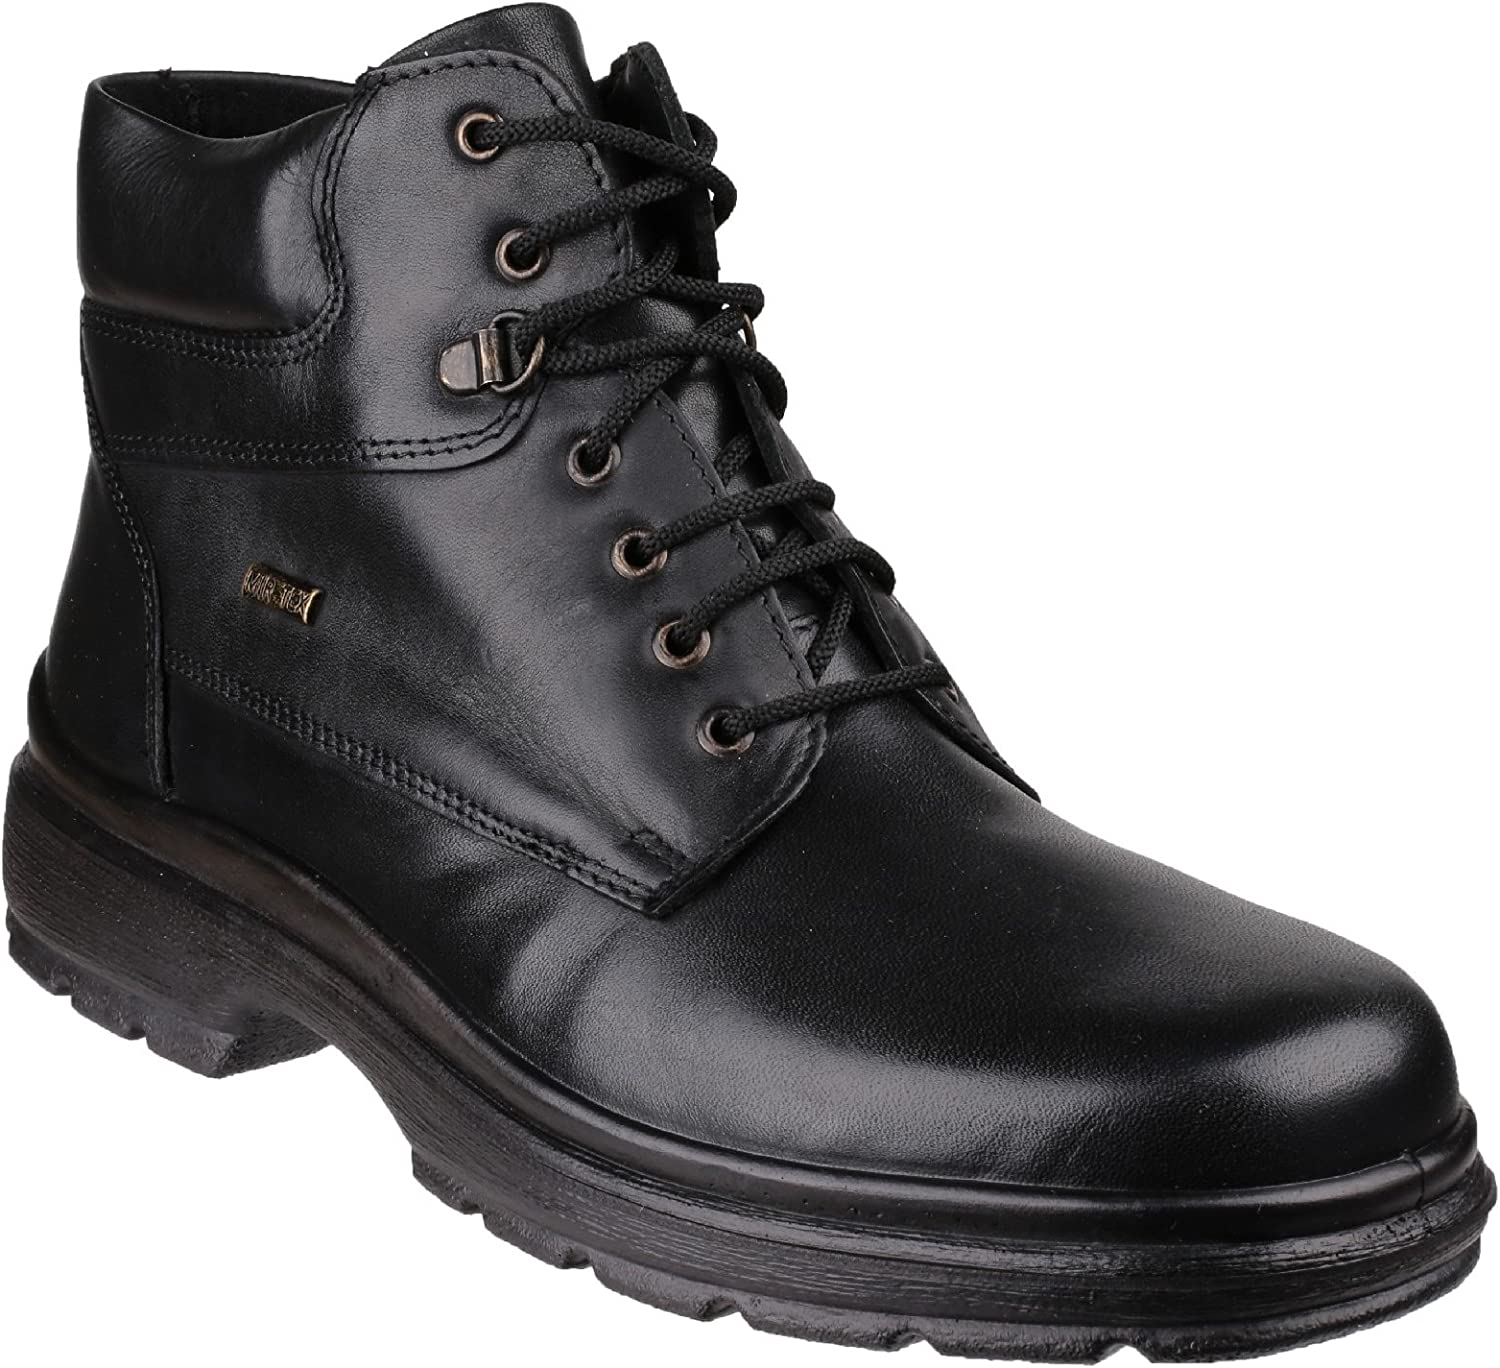 869b56e9159 Ankle Boots, Casual Black Swell Mens Boot Cotswold nbvlyd6262-New ...